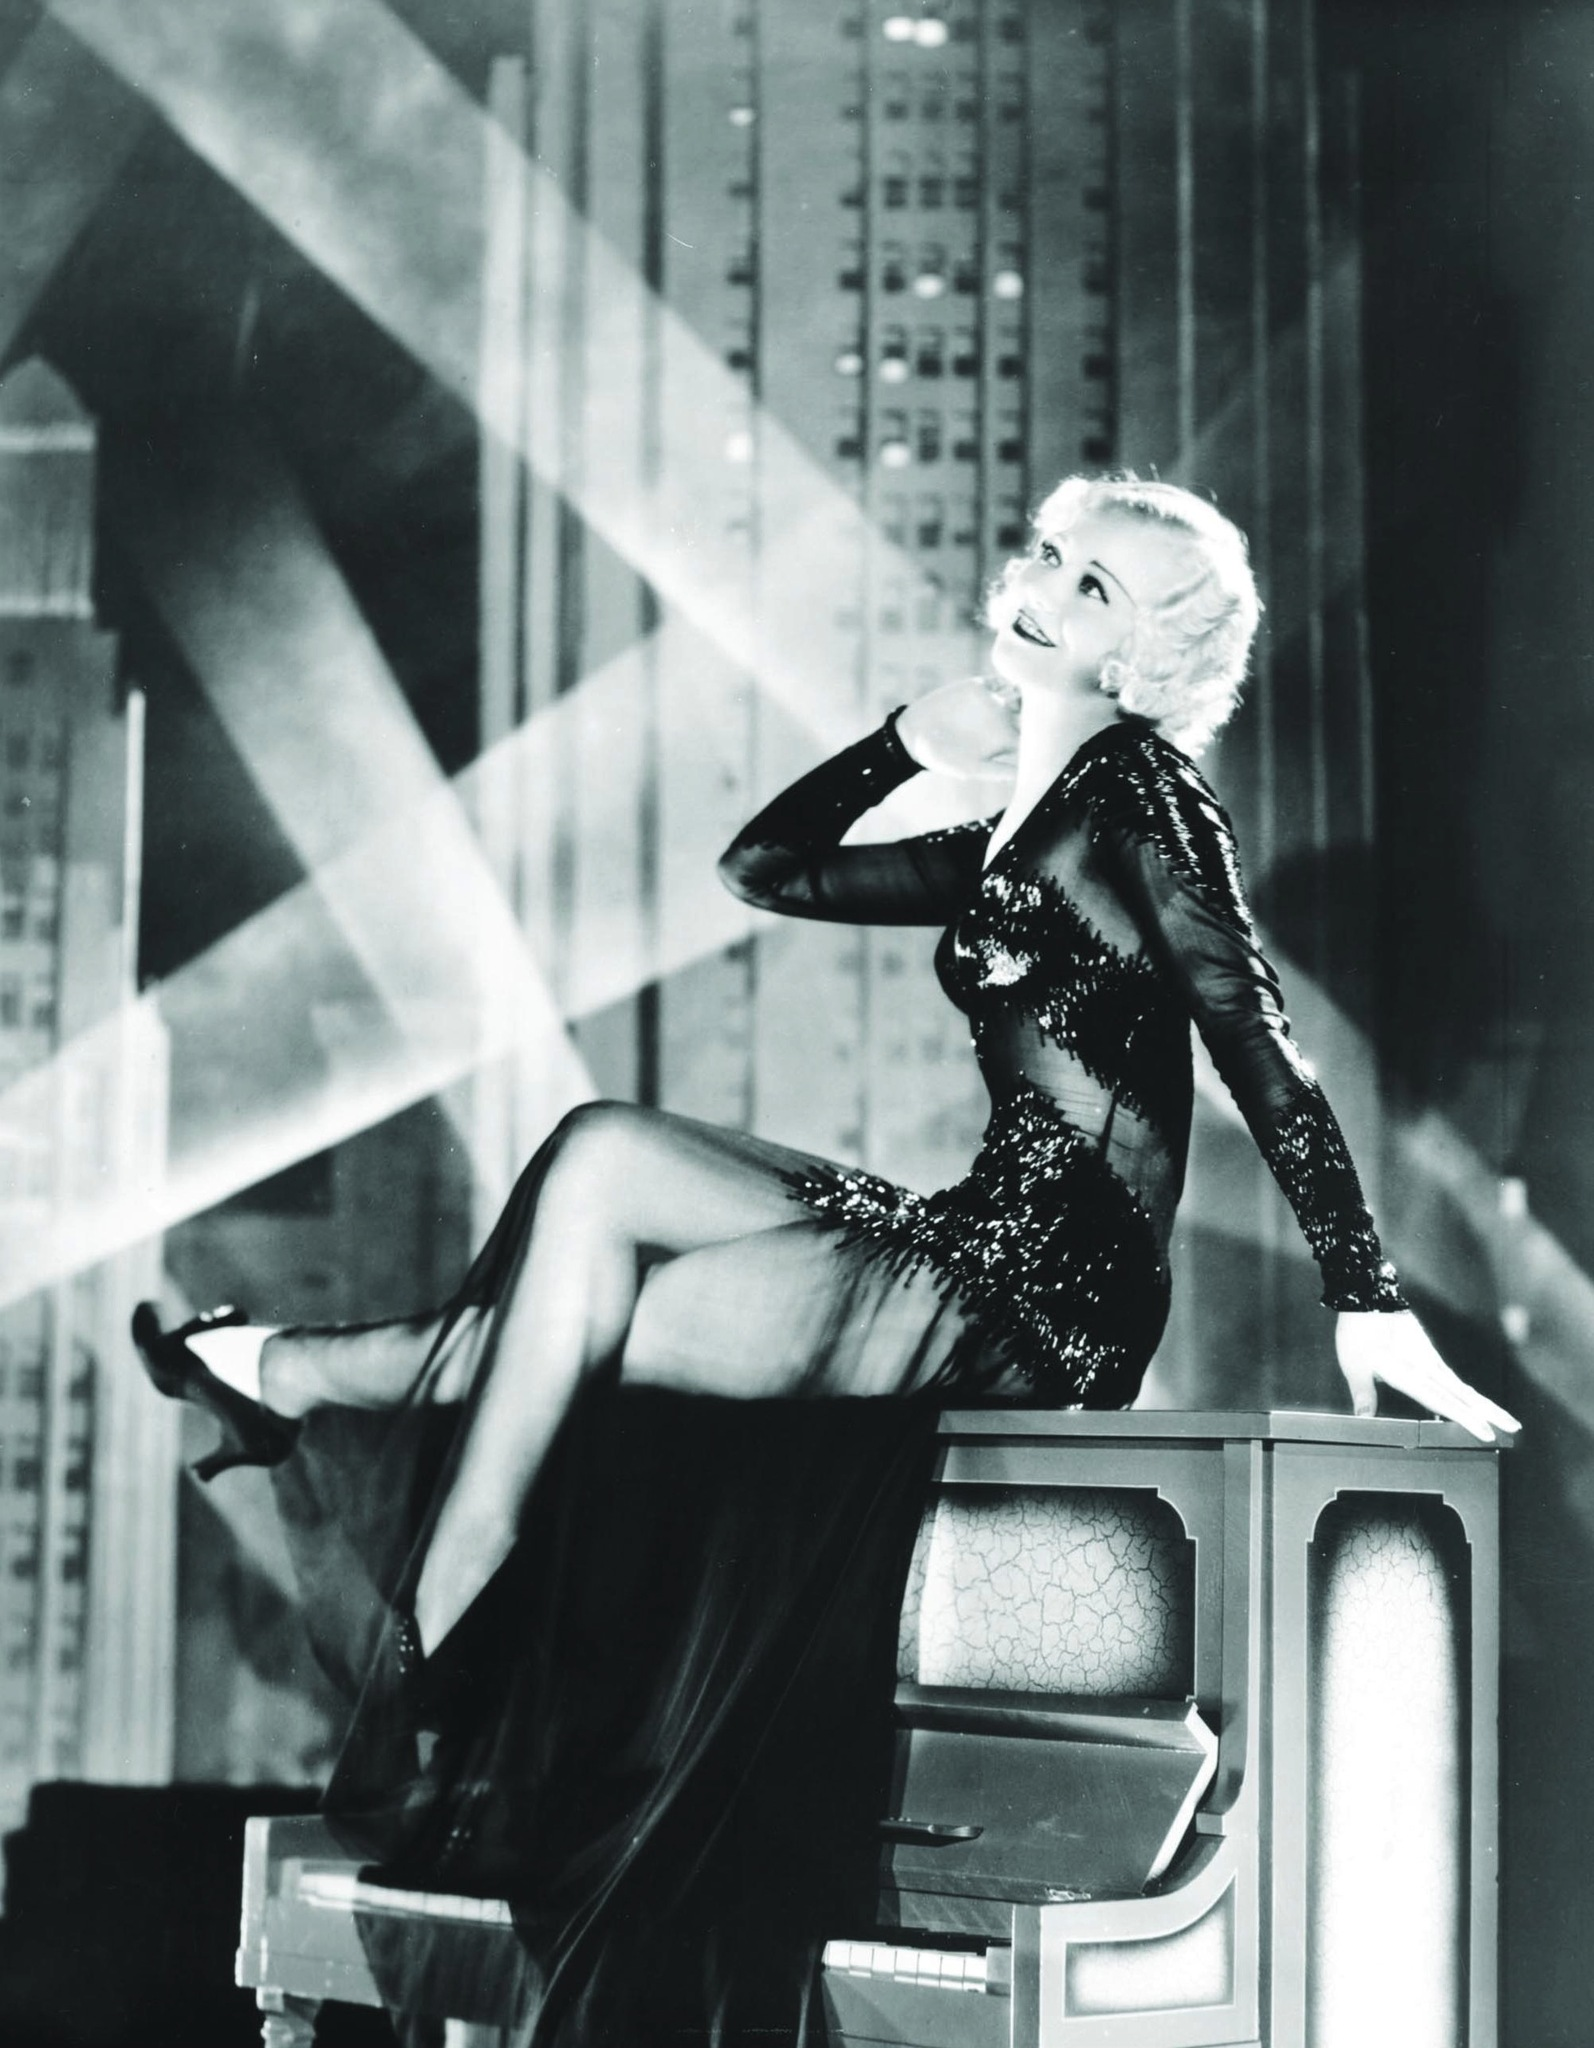 Ginger Rogers in Gold Diggers of 1933 (1933)